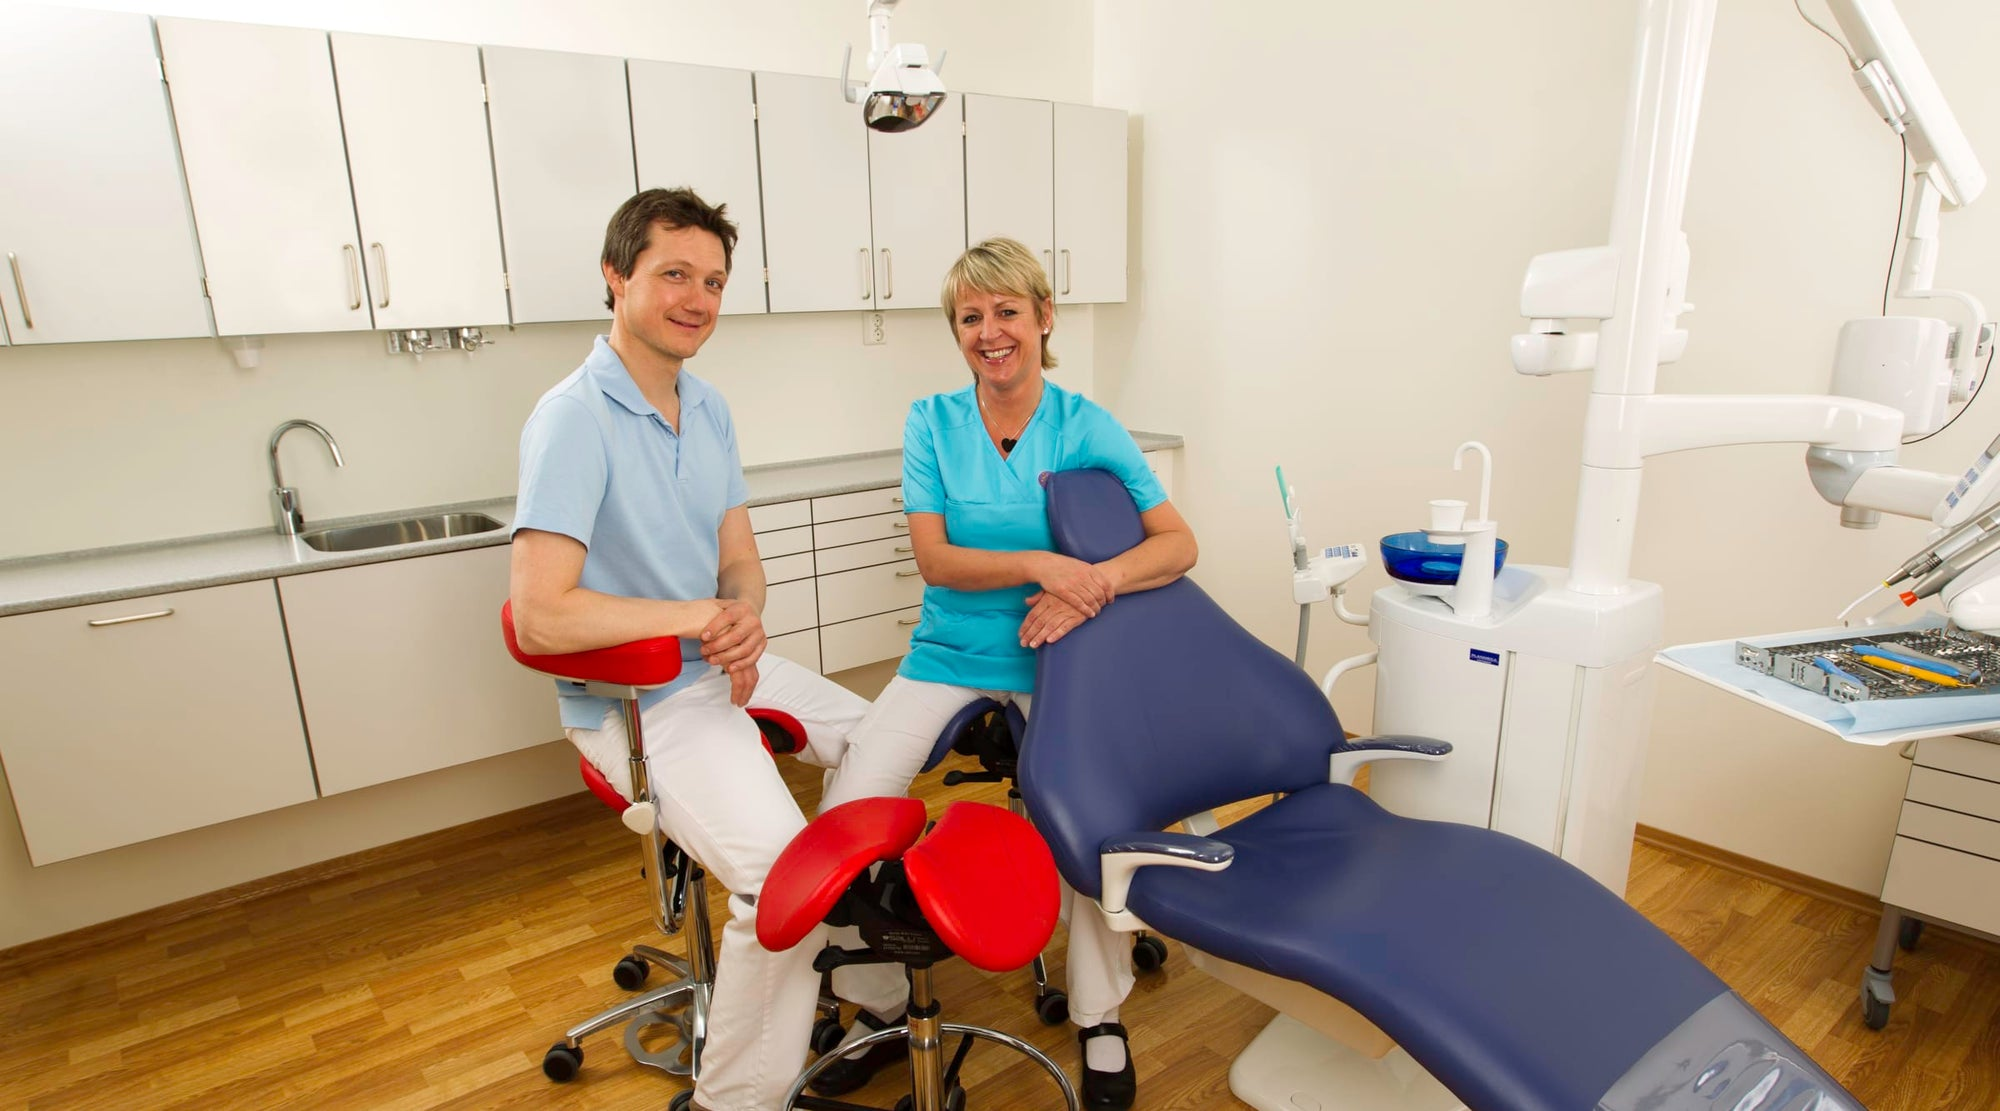 The solution to challenging dental ergonomics